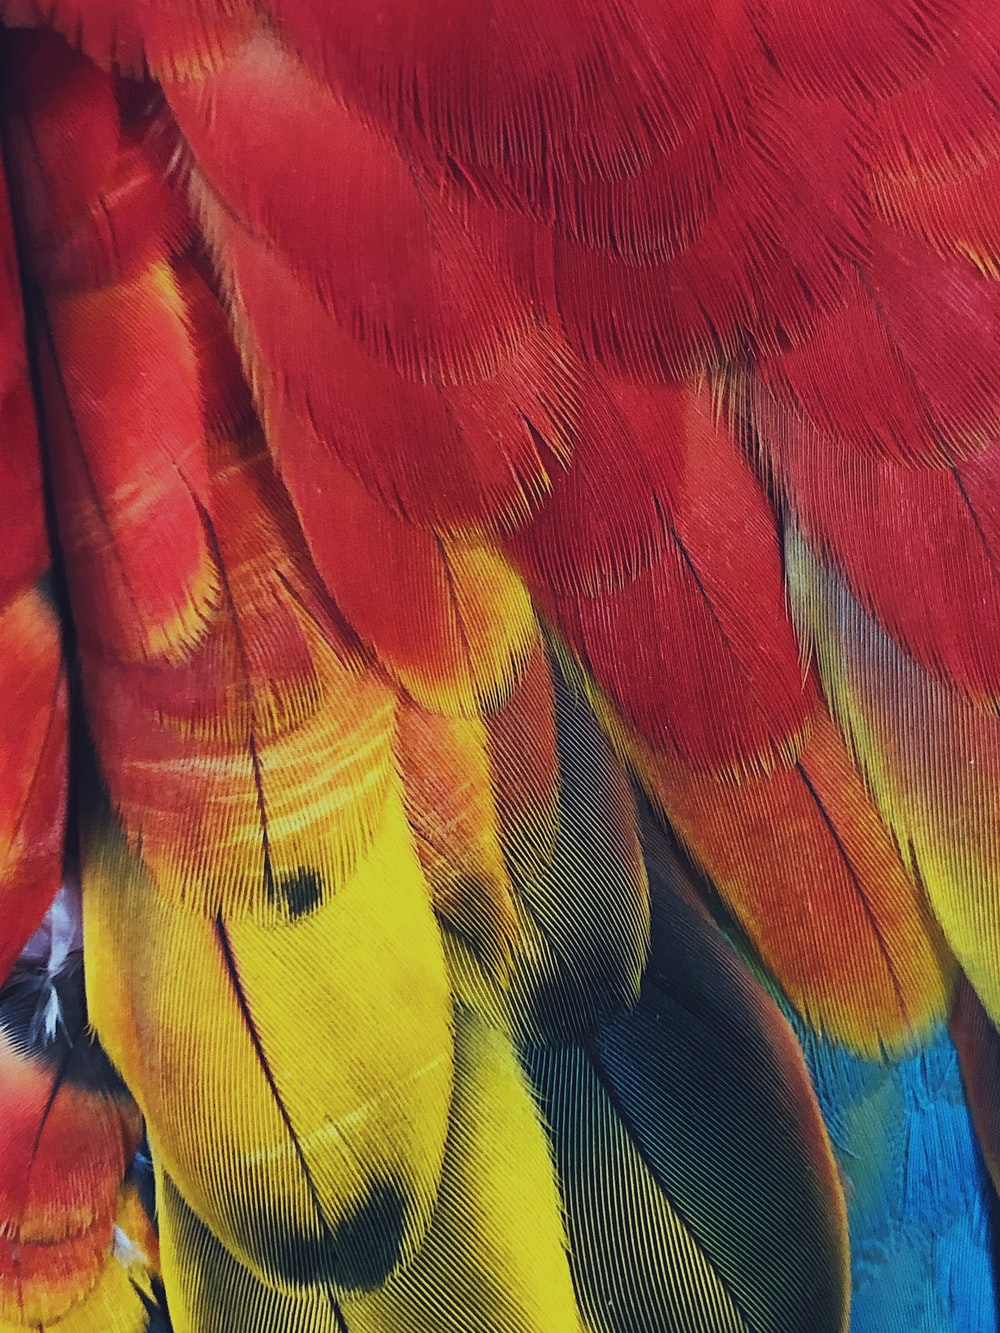 red and yellow feathers